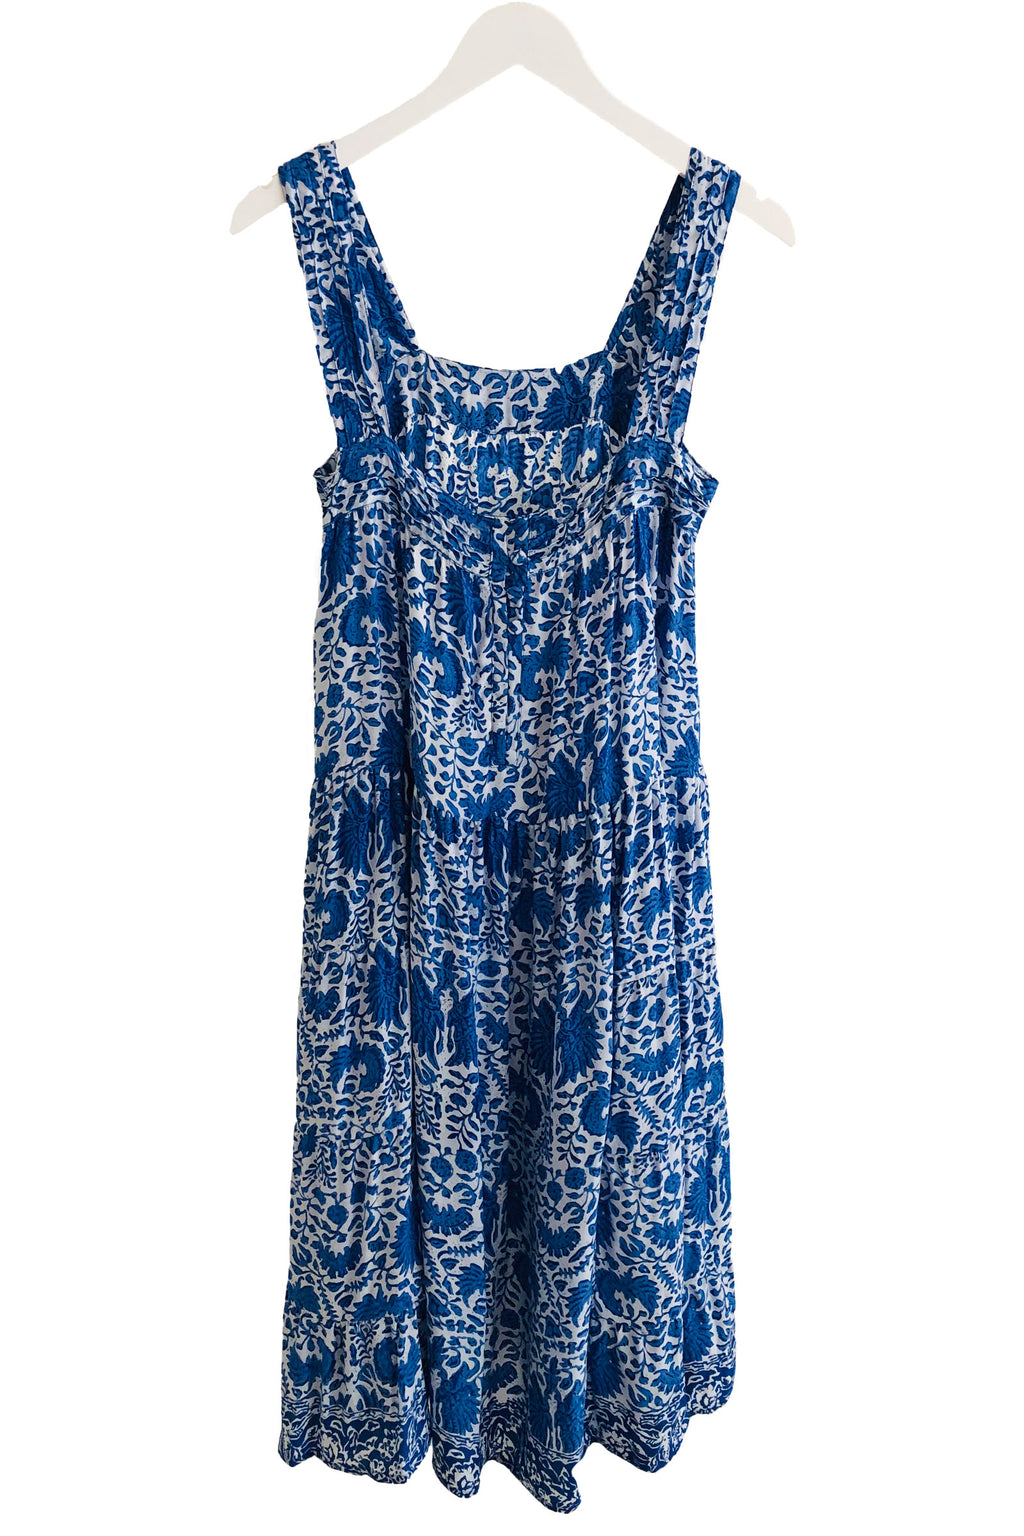 Natalie Martin Jasmine Dress in Wing Print Corfu Blue